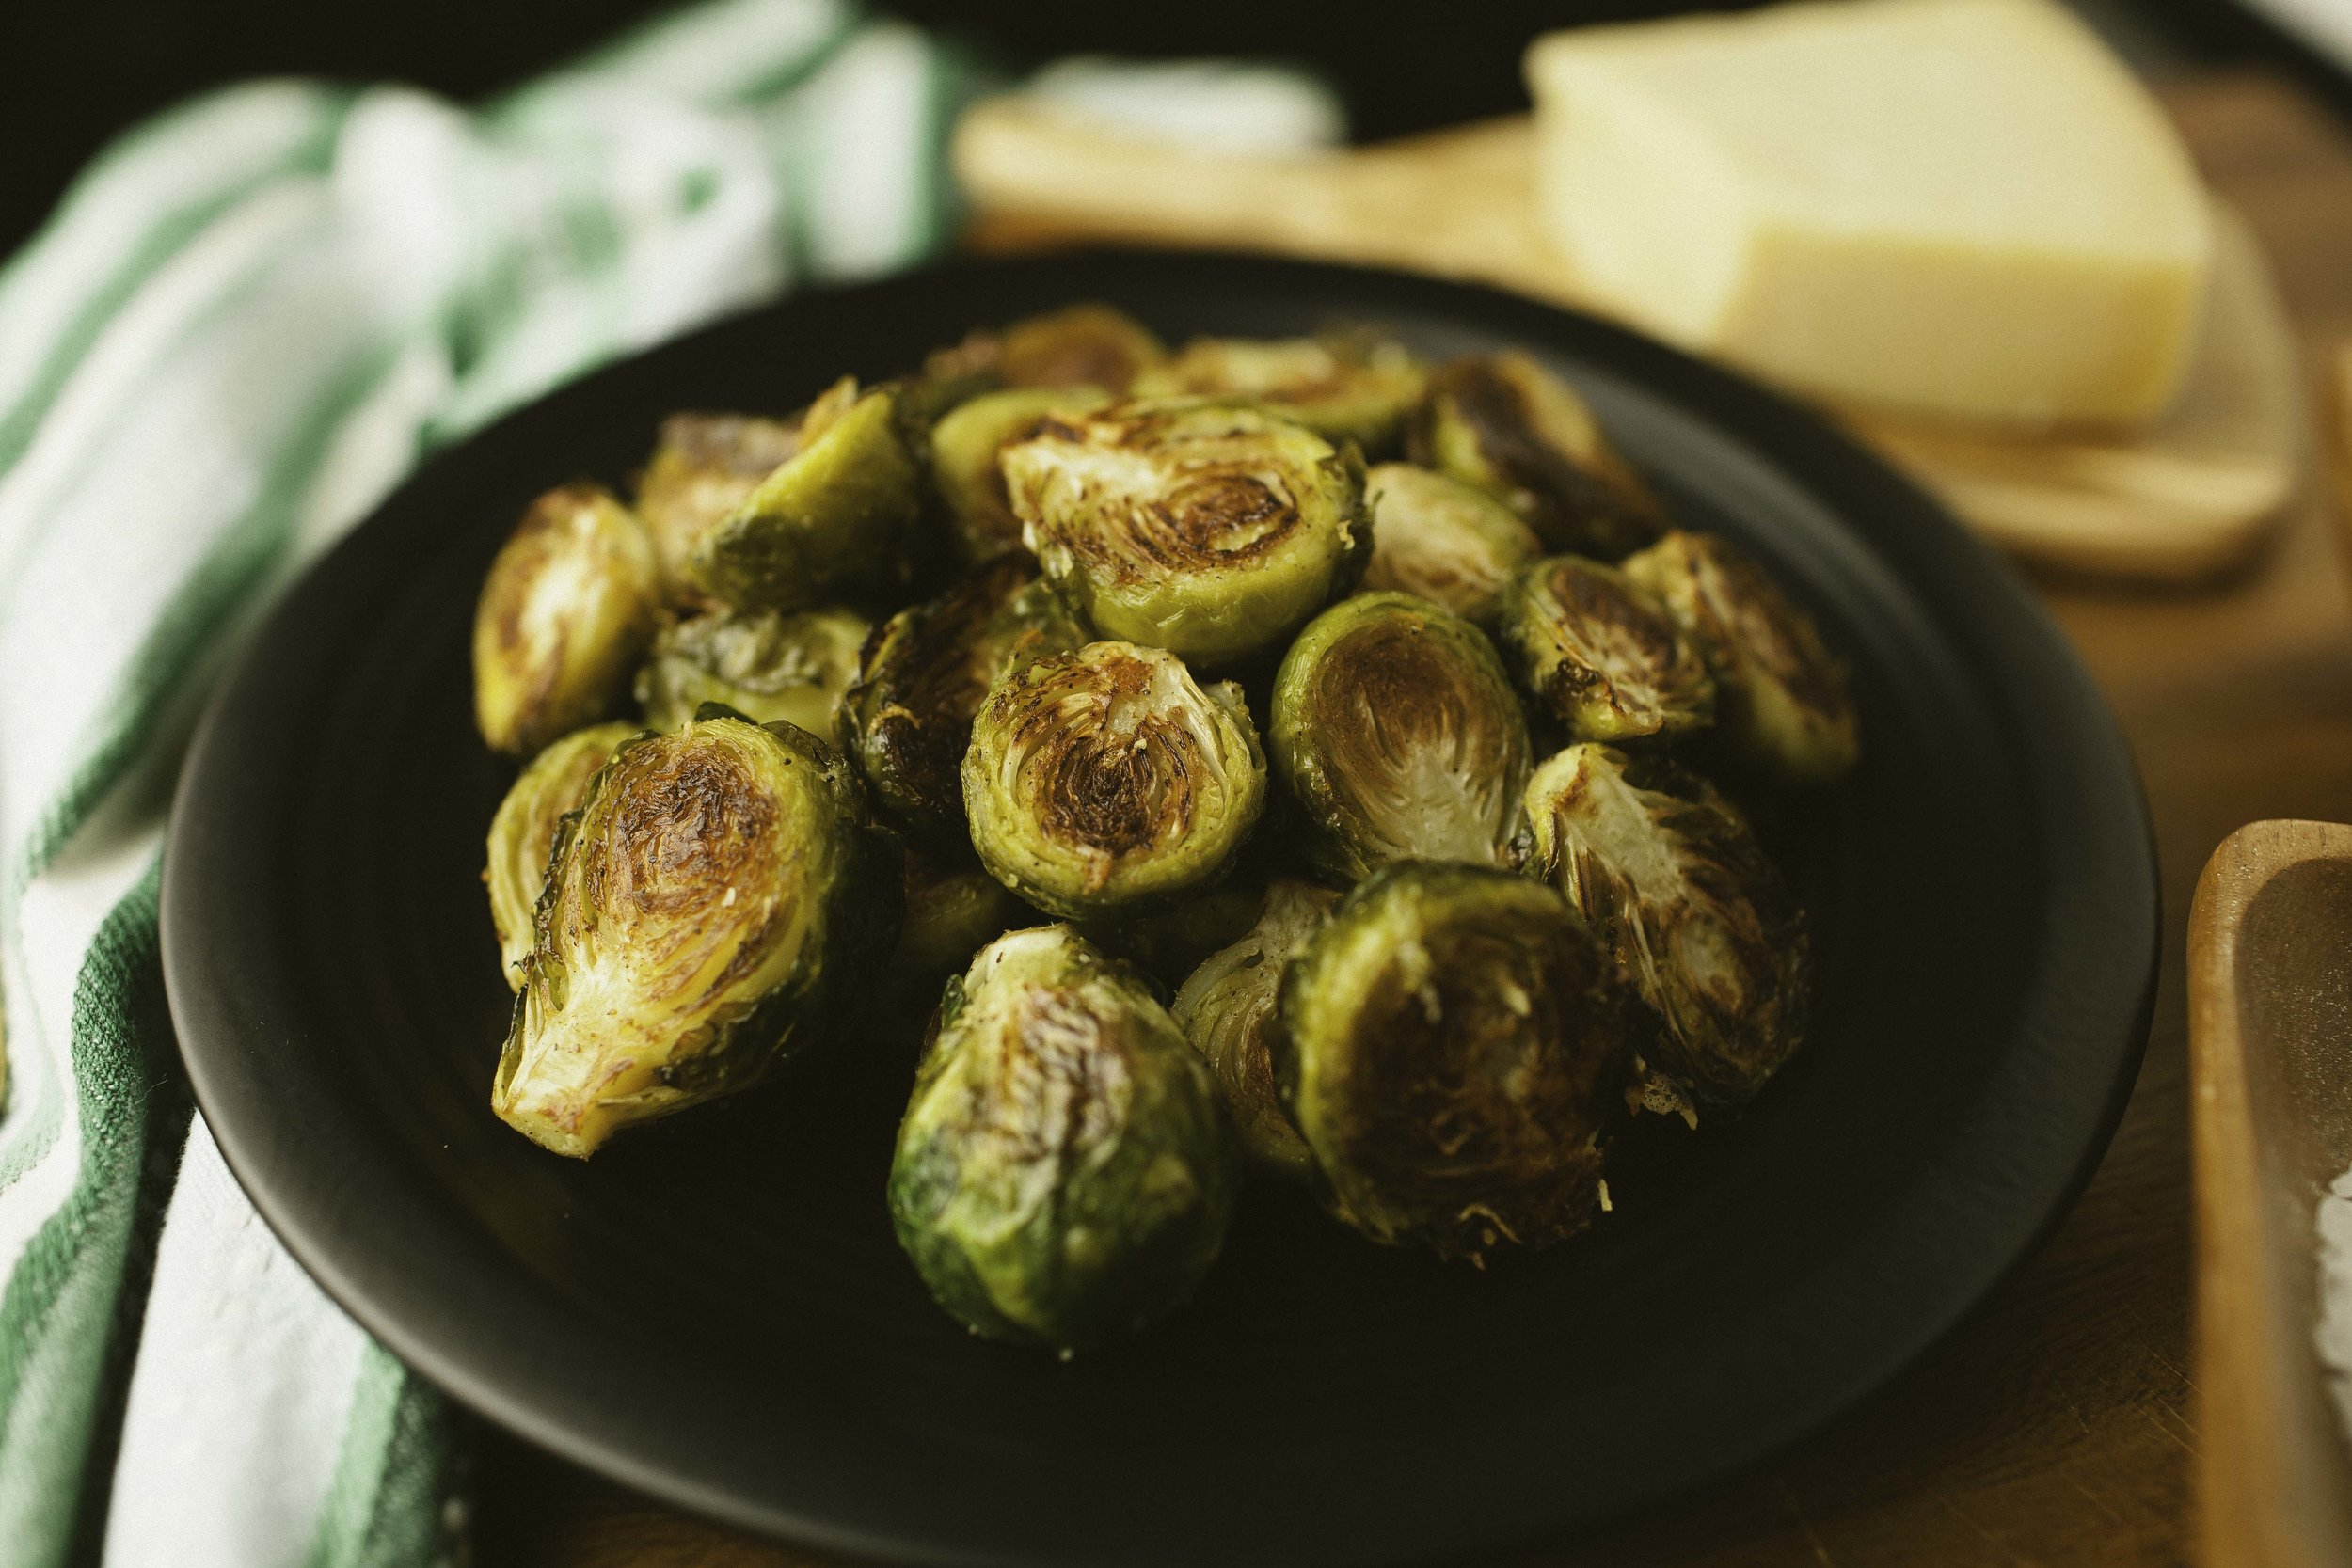 Brussel Sprouts LOW RES_26.jpg